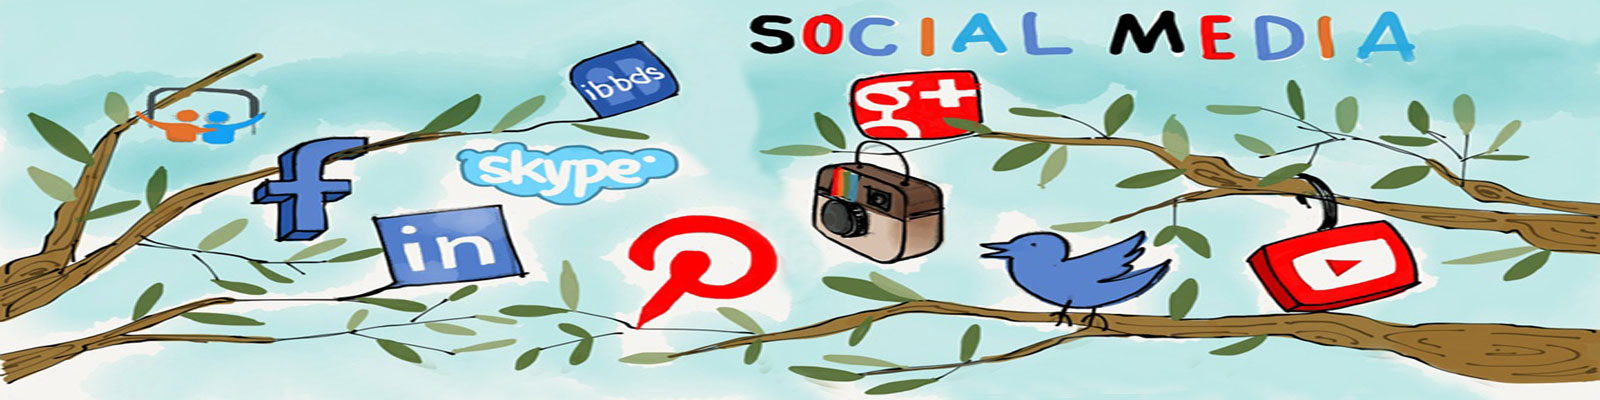 Social Media Solutions by ibbds